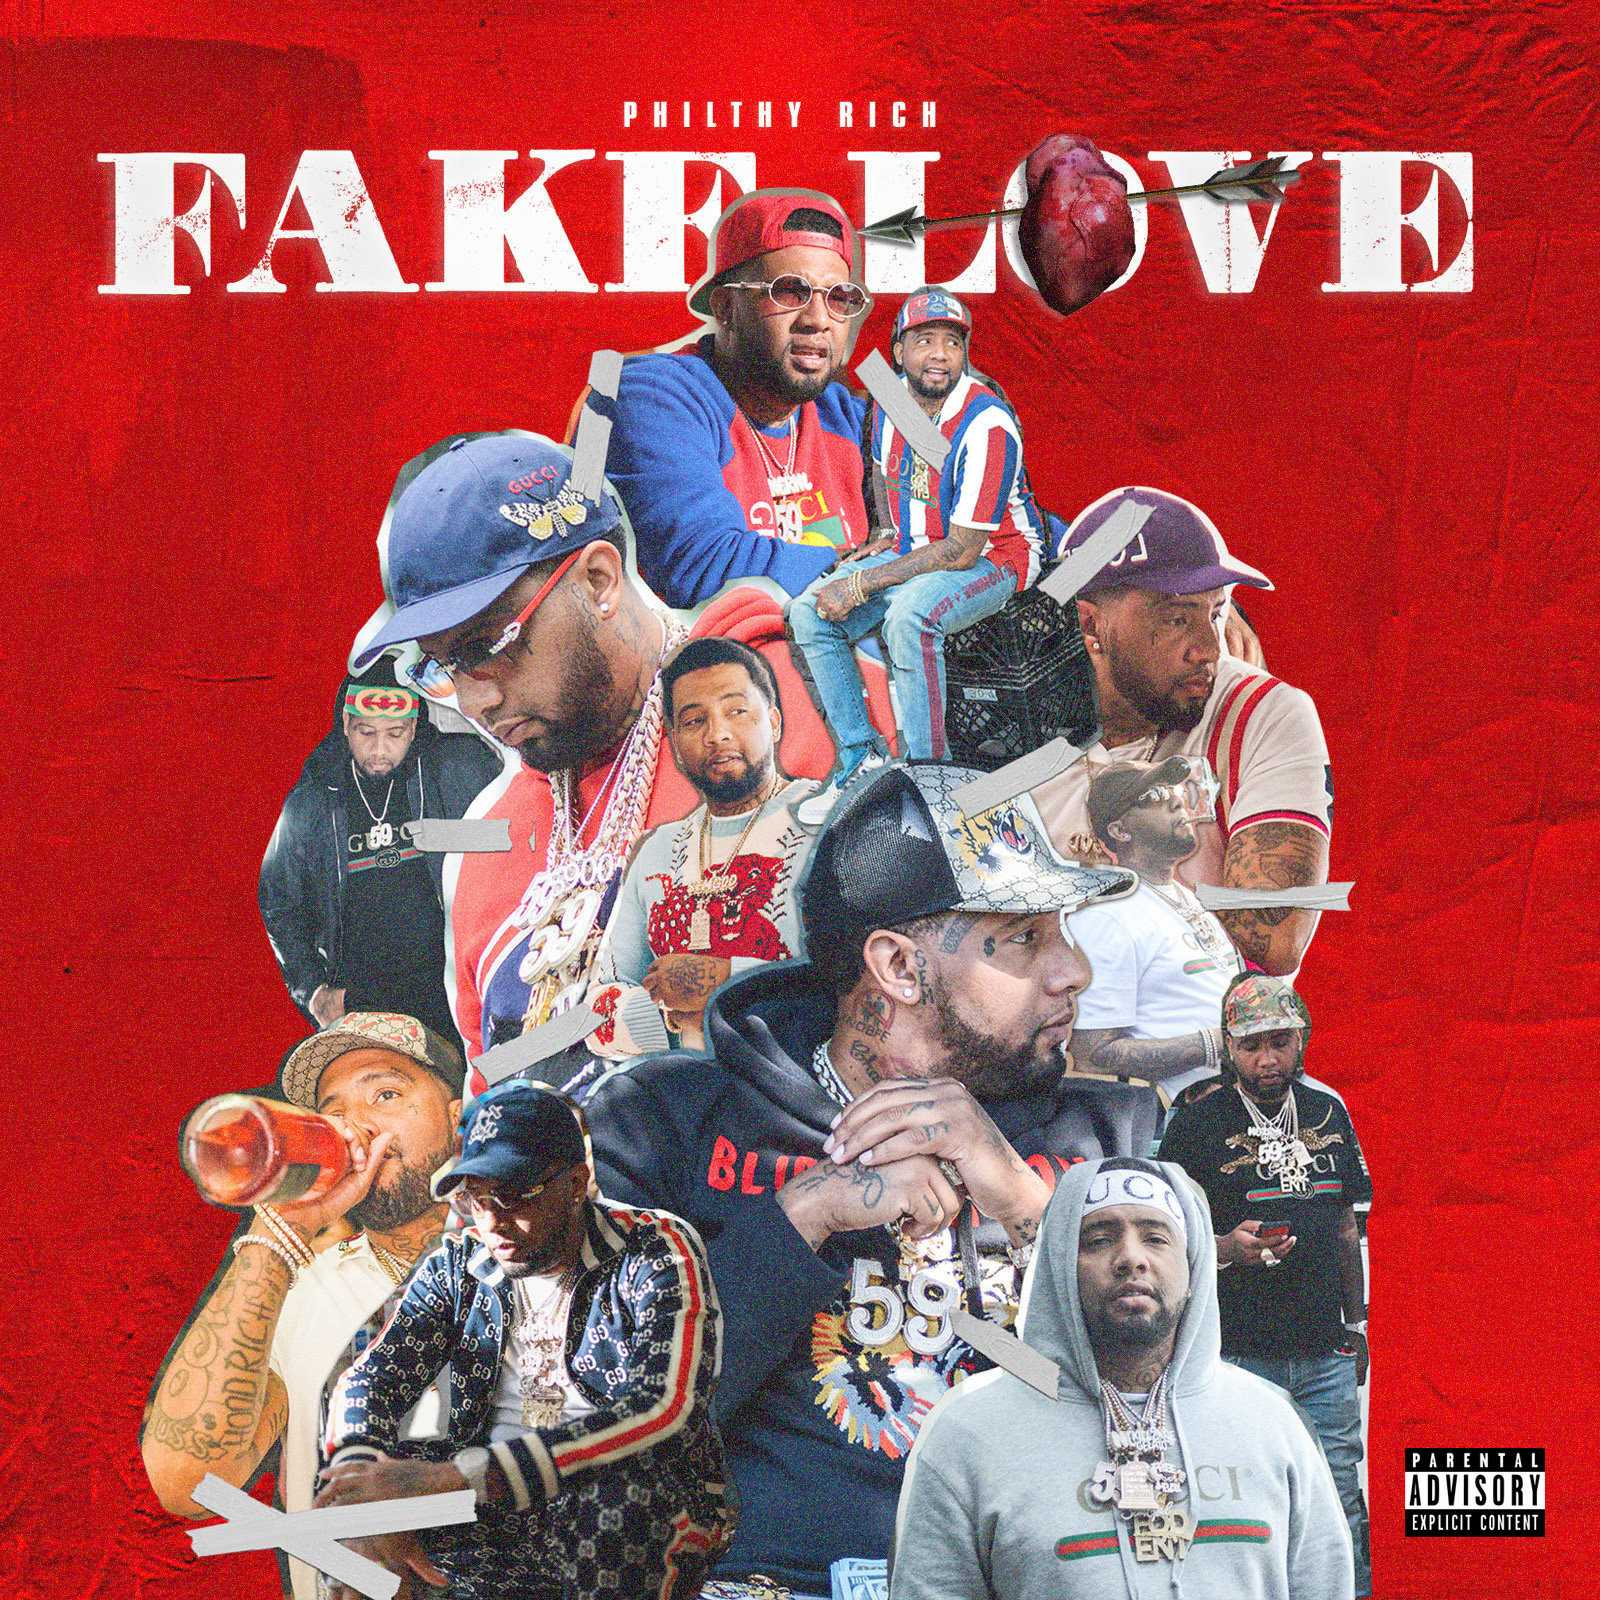 Album Stream: Philthy Rich | Fake Love (Deluxe Version) [Audio]